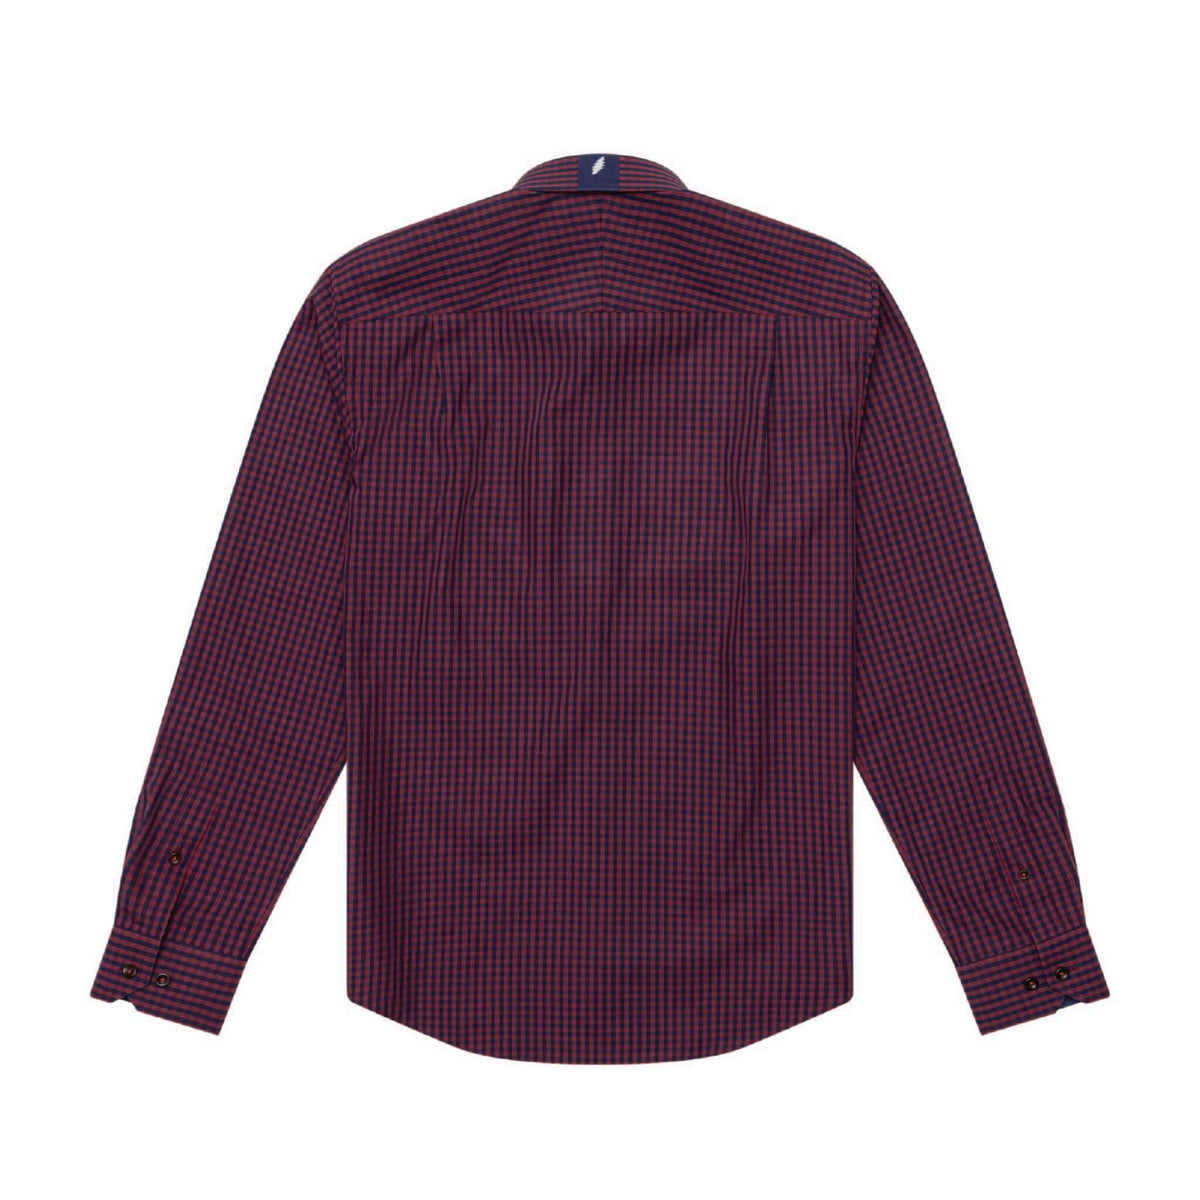 Grateful Dead Navy and Dark Red Gingham Button-Down - Section 119